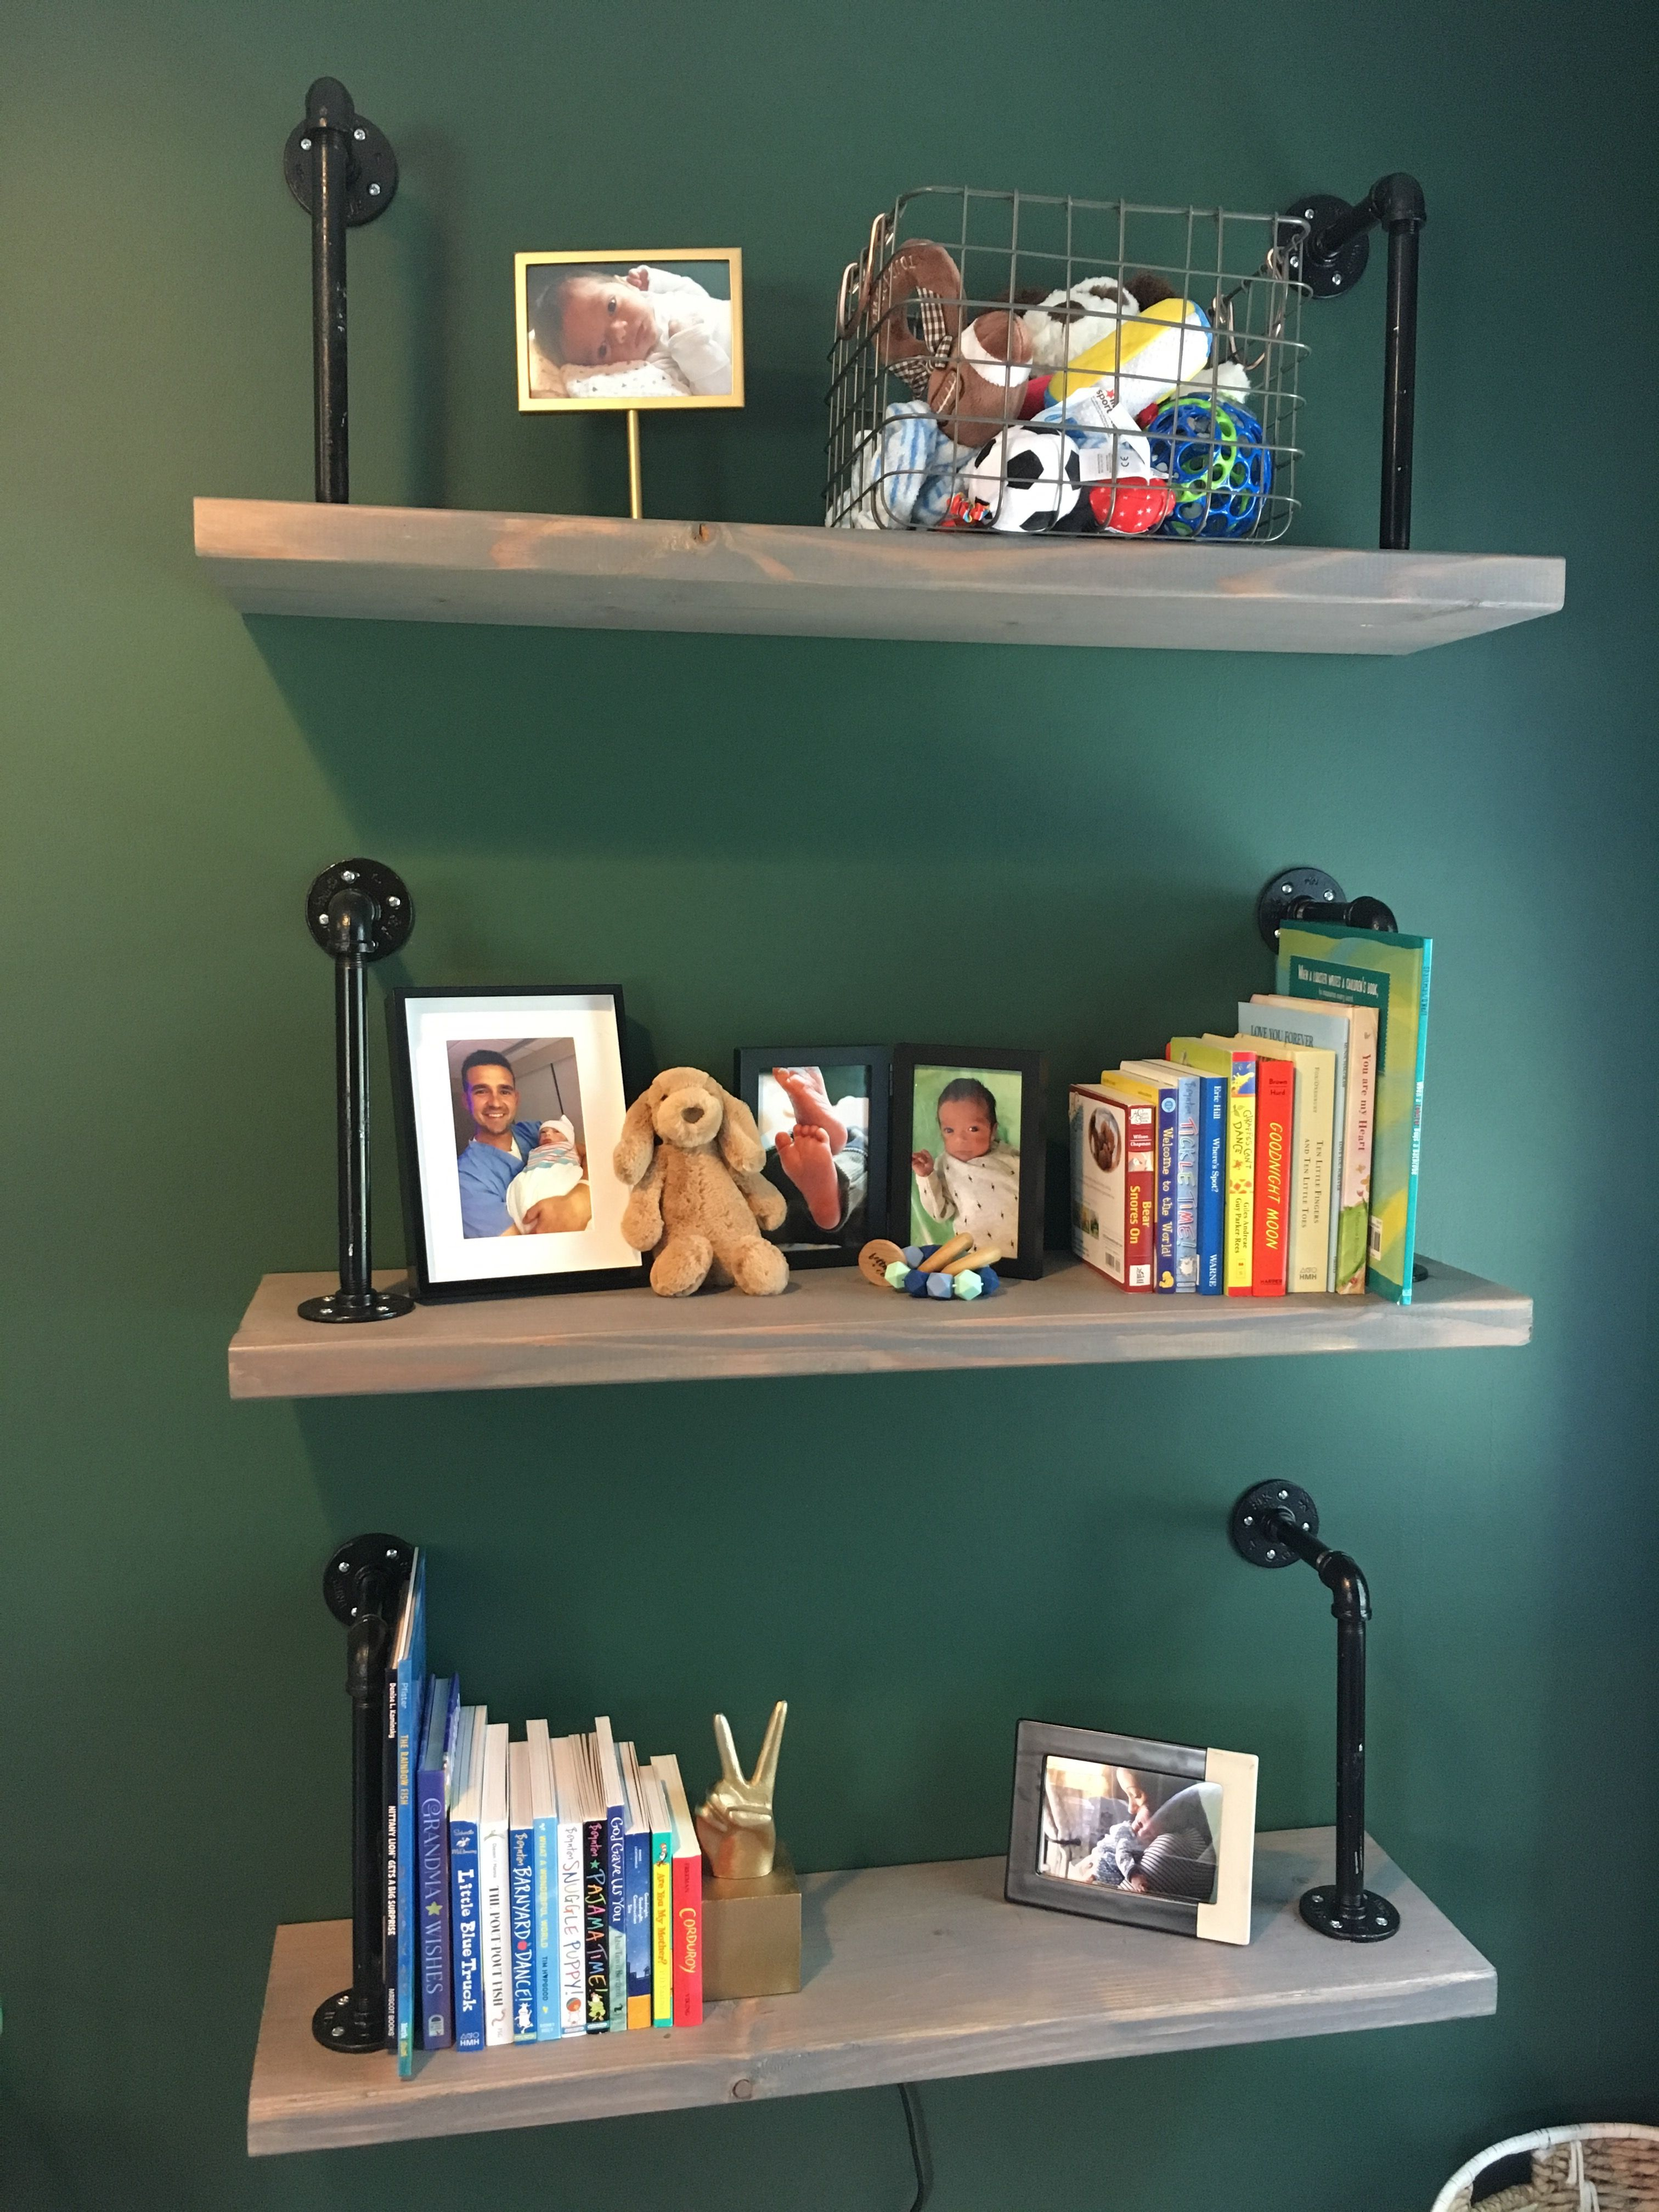 Boy Nursery Hunter Green Behr Paint Shelves Made From Wood Grey Stain And Spray Painted Pipes Home Depot Metal Basket Picture Frames Bookend